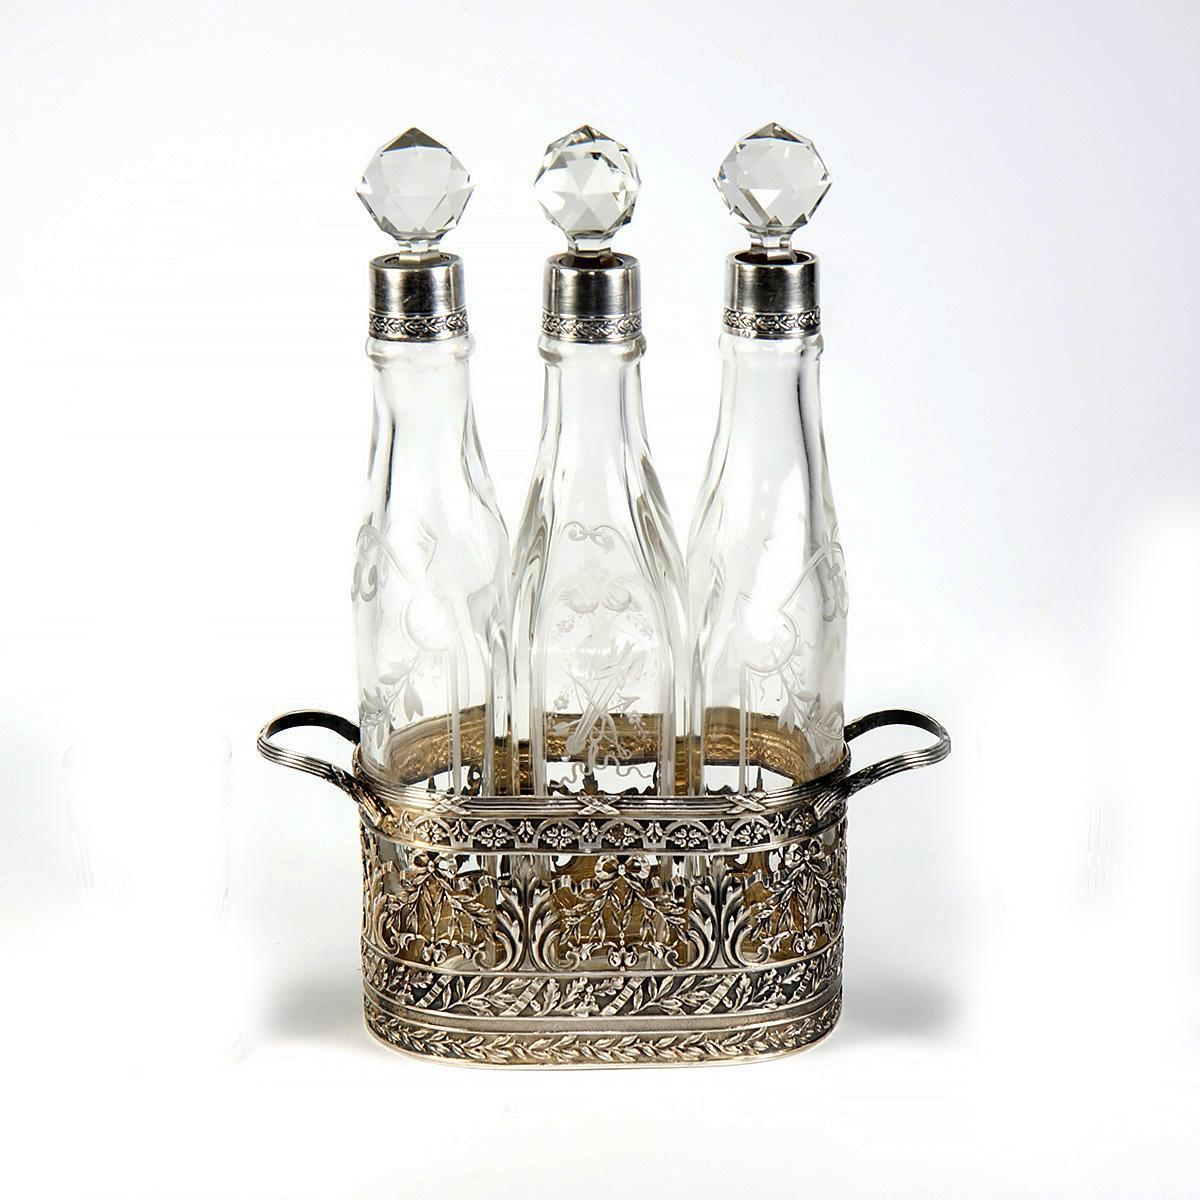 RARE Antique French Sterling Silver & 18k Gold Vermeil Decanter Liqueur Set, Caddy of 3 Carafe